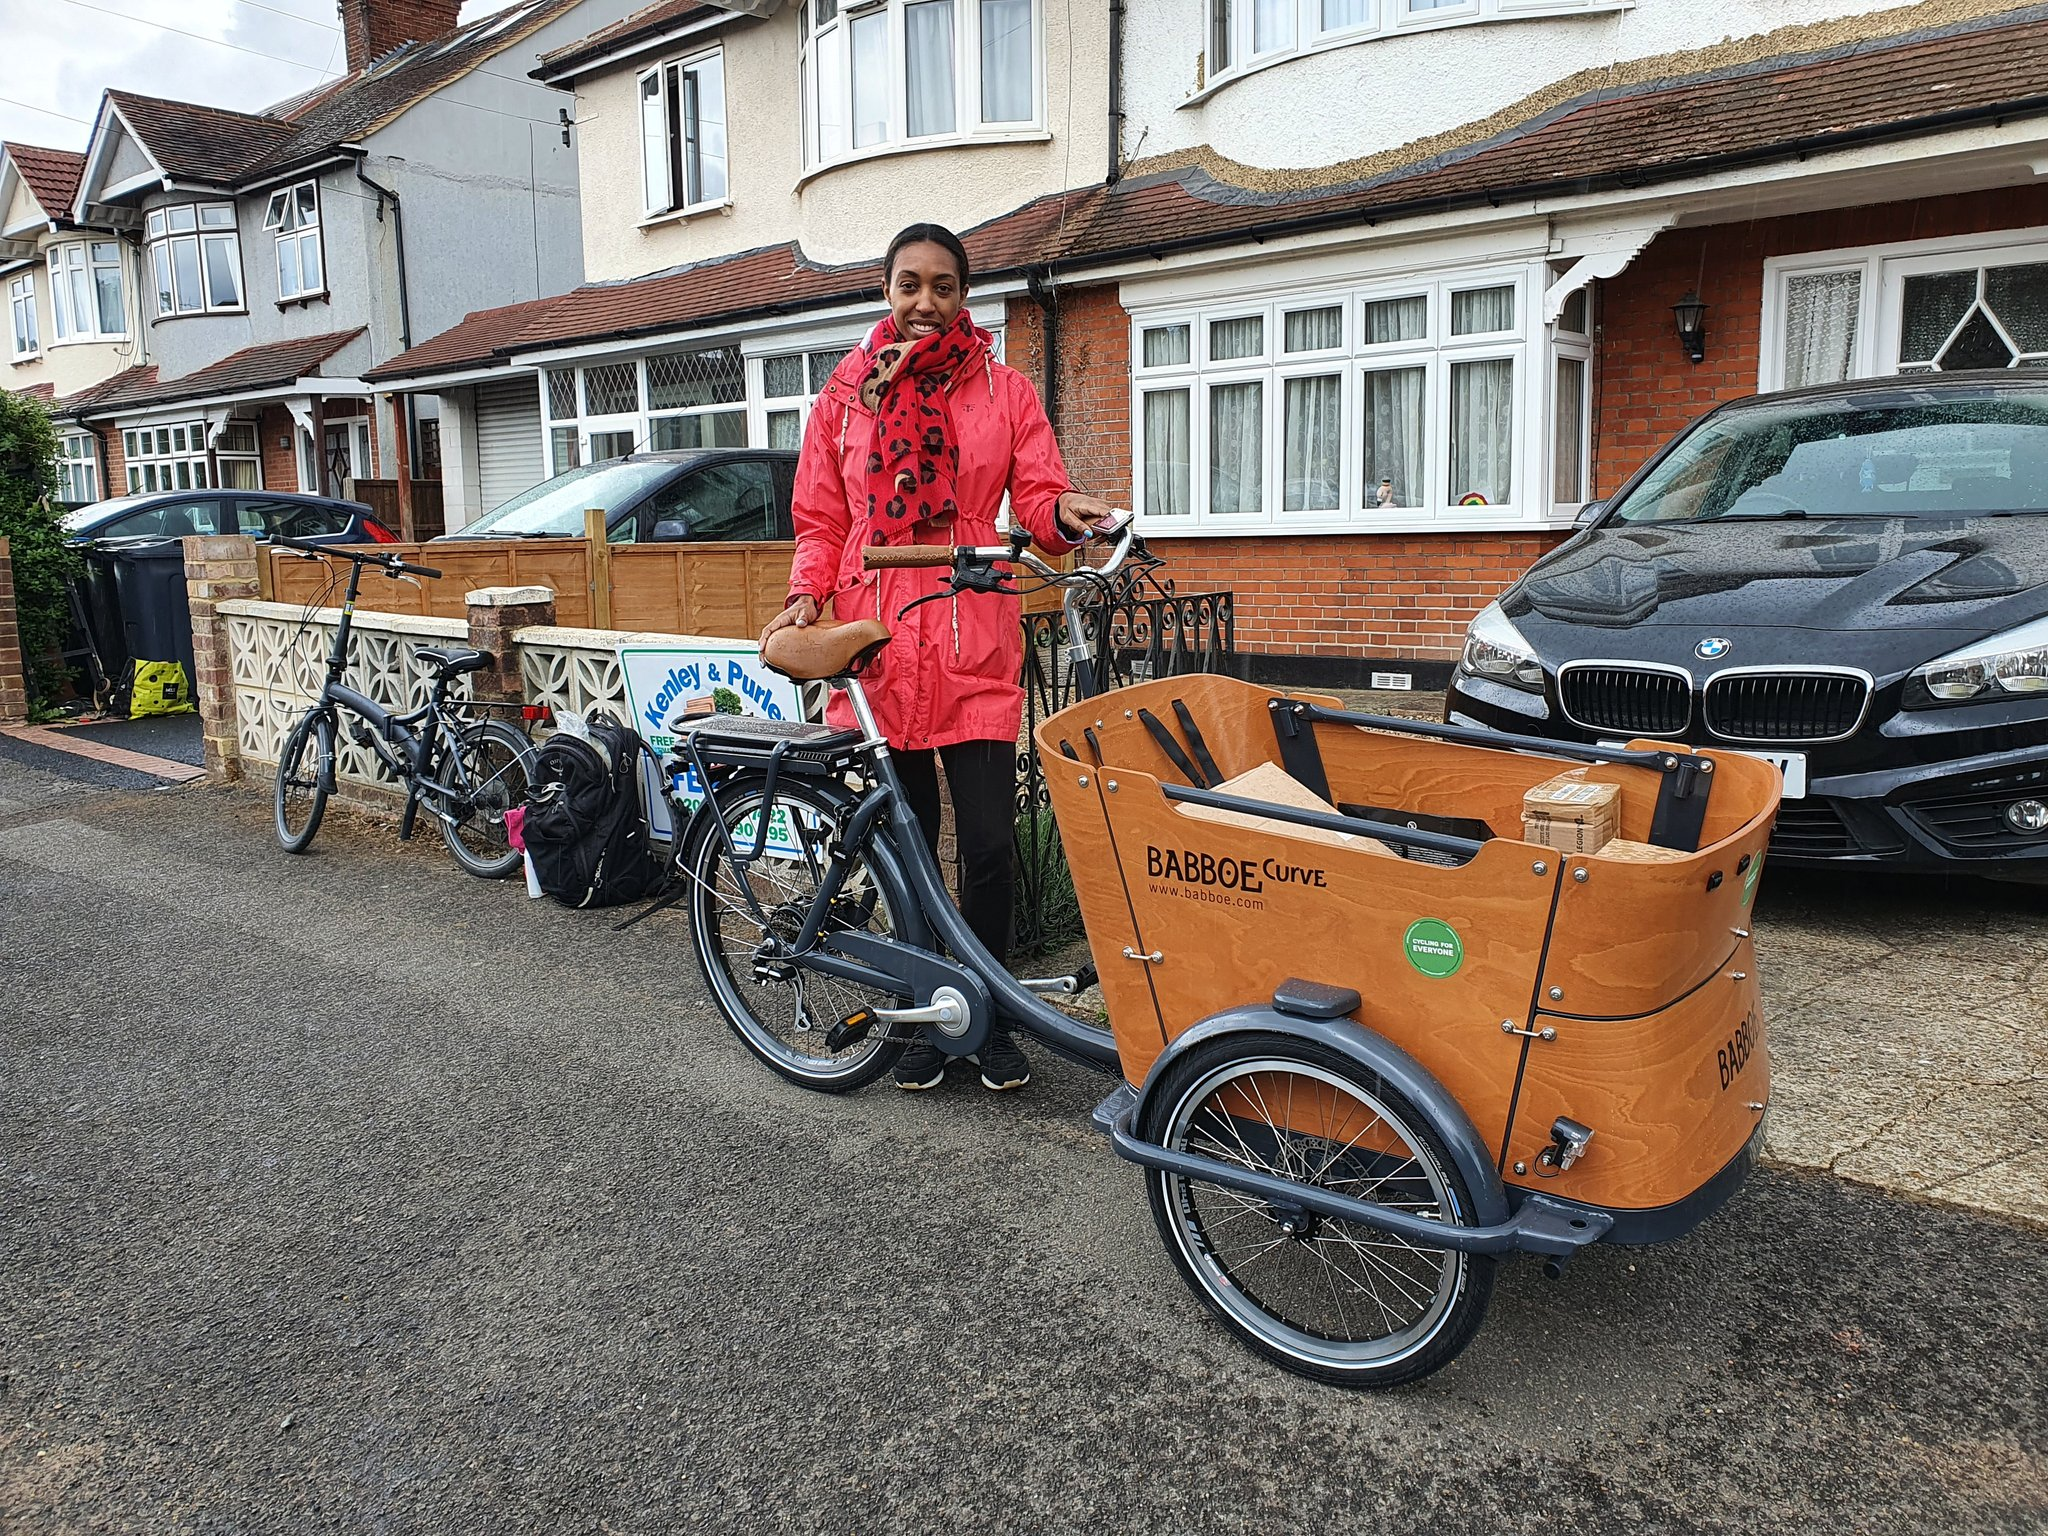 A woman stands in front of a house with her cargo bike, smiling and looking into the camera. Using cargo bikes for short trips around town is greener than either a petrol or electric car.